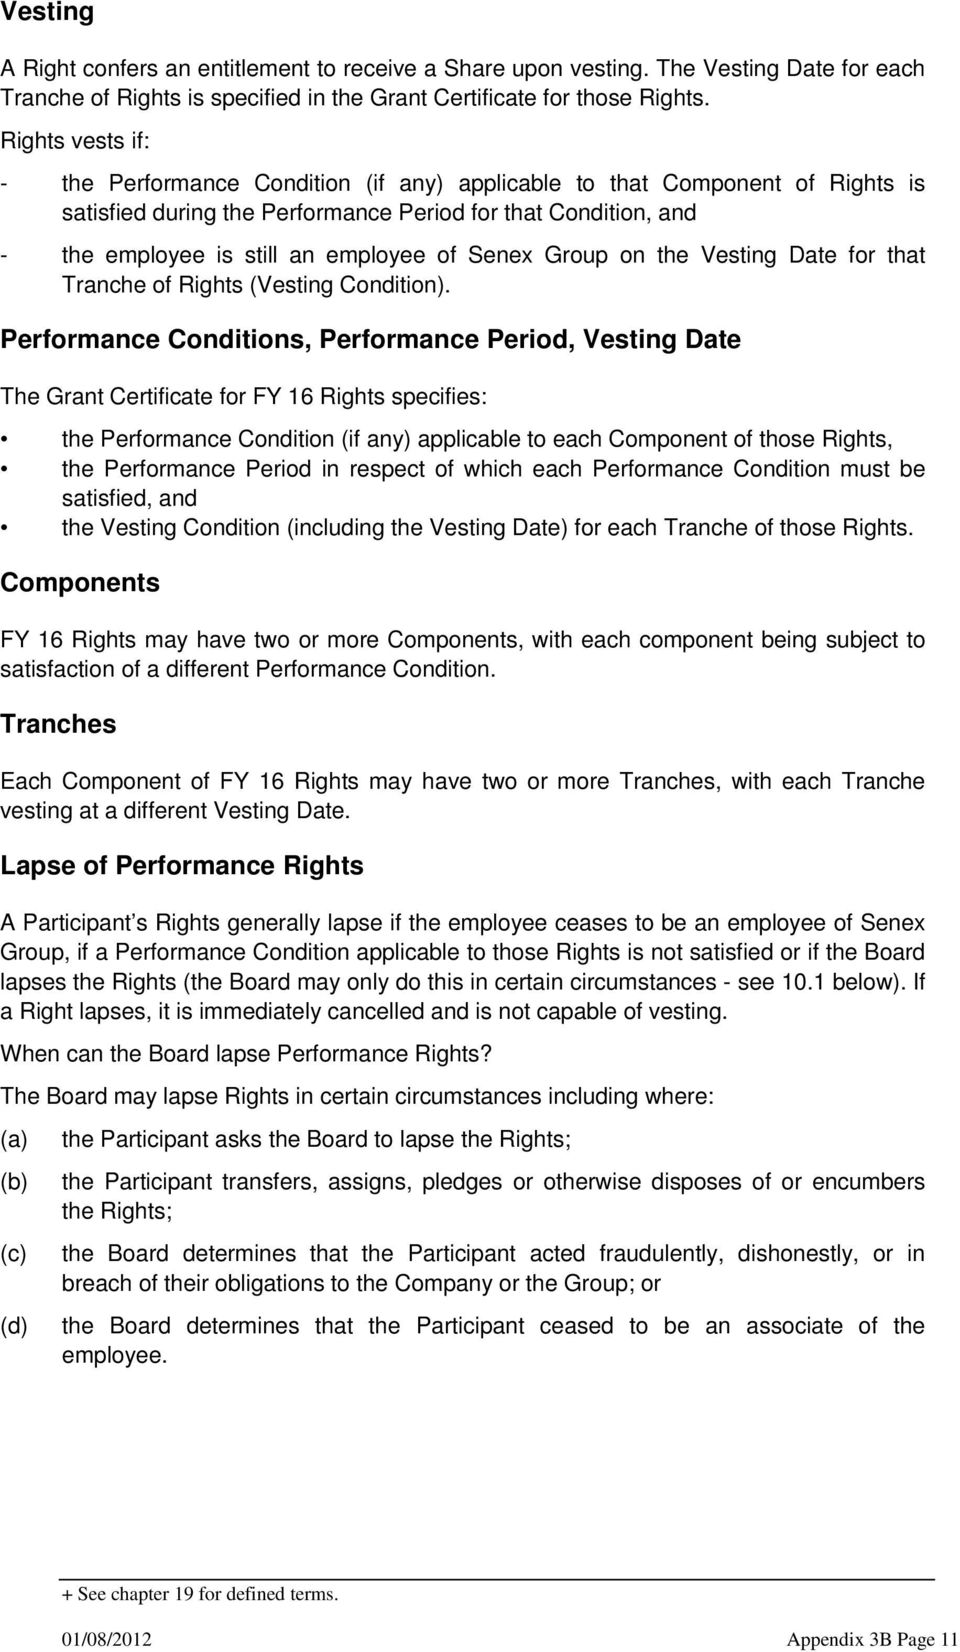 Senex Group on the Vesting Date for that Tranche of Rights (Vesting Condition).